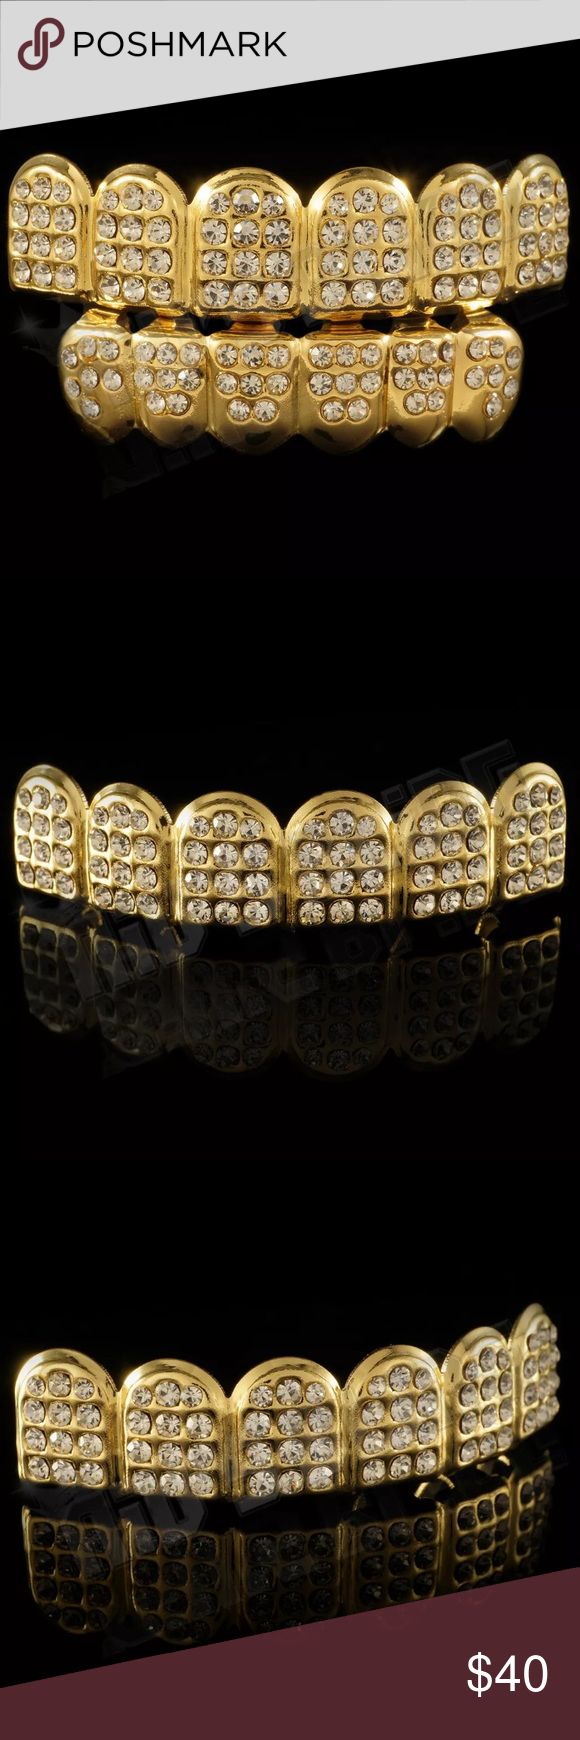 ICED OUT Grillz Set Top Bottom Teeth Men Women NEW BRAND NEW - SHINY ICED OUT GRILL SET - Total of 118 Clear Simulated Diamonds, Professionally Set by hand.  Top and bottom mouthpieces made from a brass core with premium gold plating. One size fits all, come individually packaged, with a reusable silicone molding bars and instructions for easy fitting and adjusting without messy molds. Our grillz are lead and nickel free, FDA approved and safe to wear inside your mouth. You get the same look…